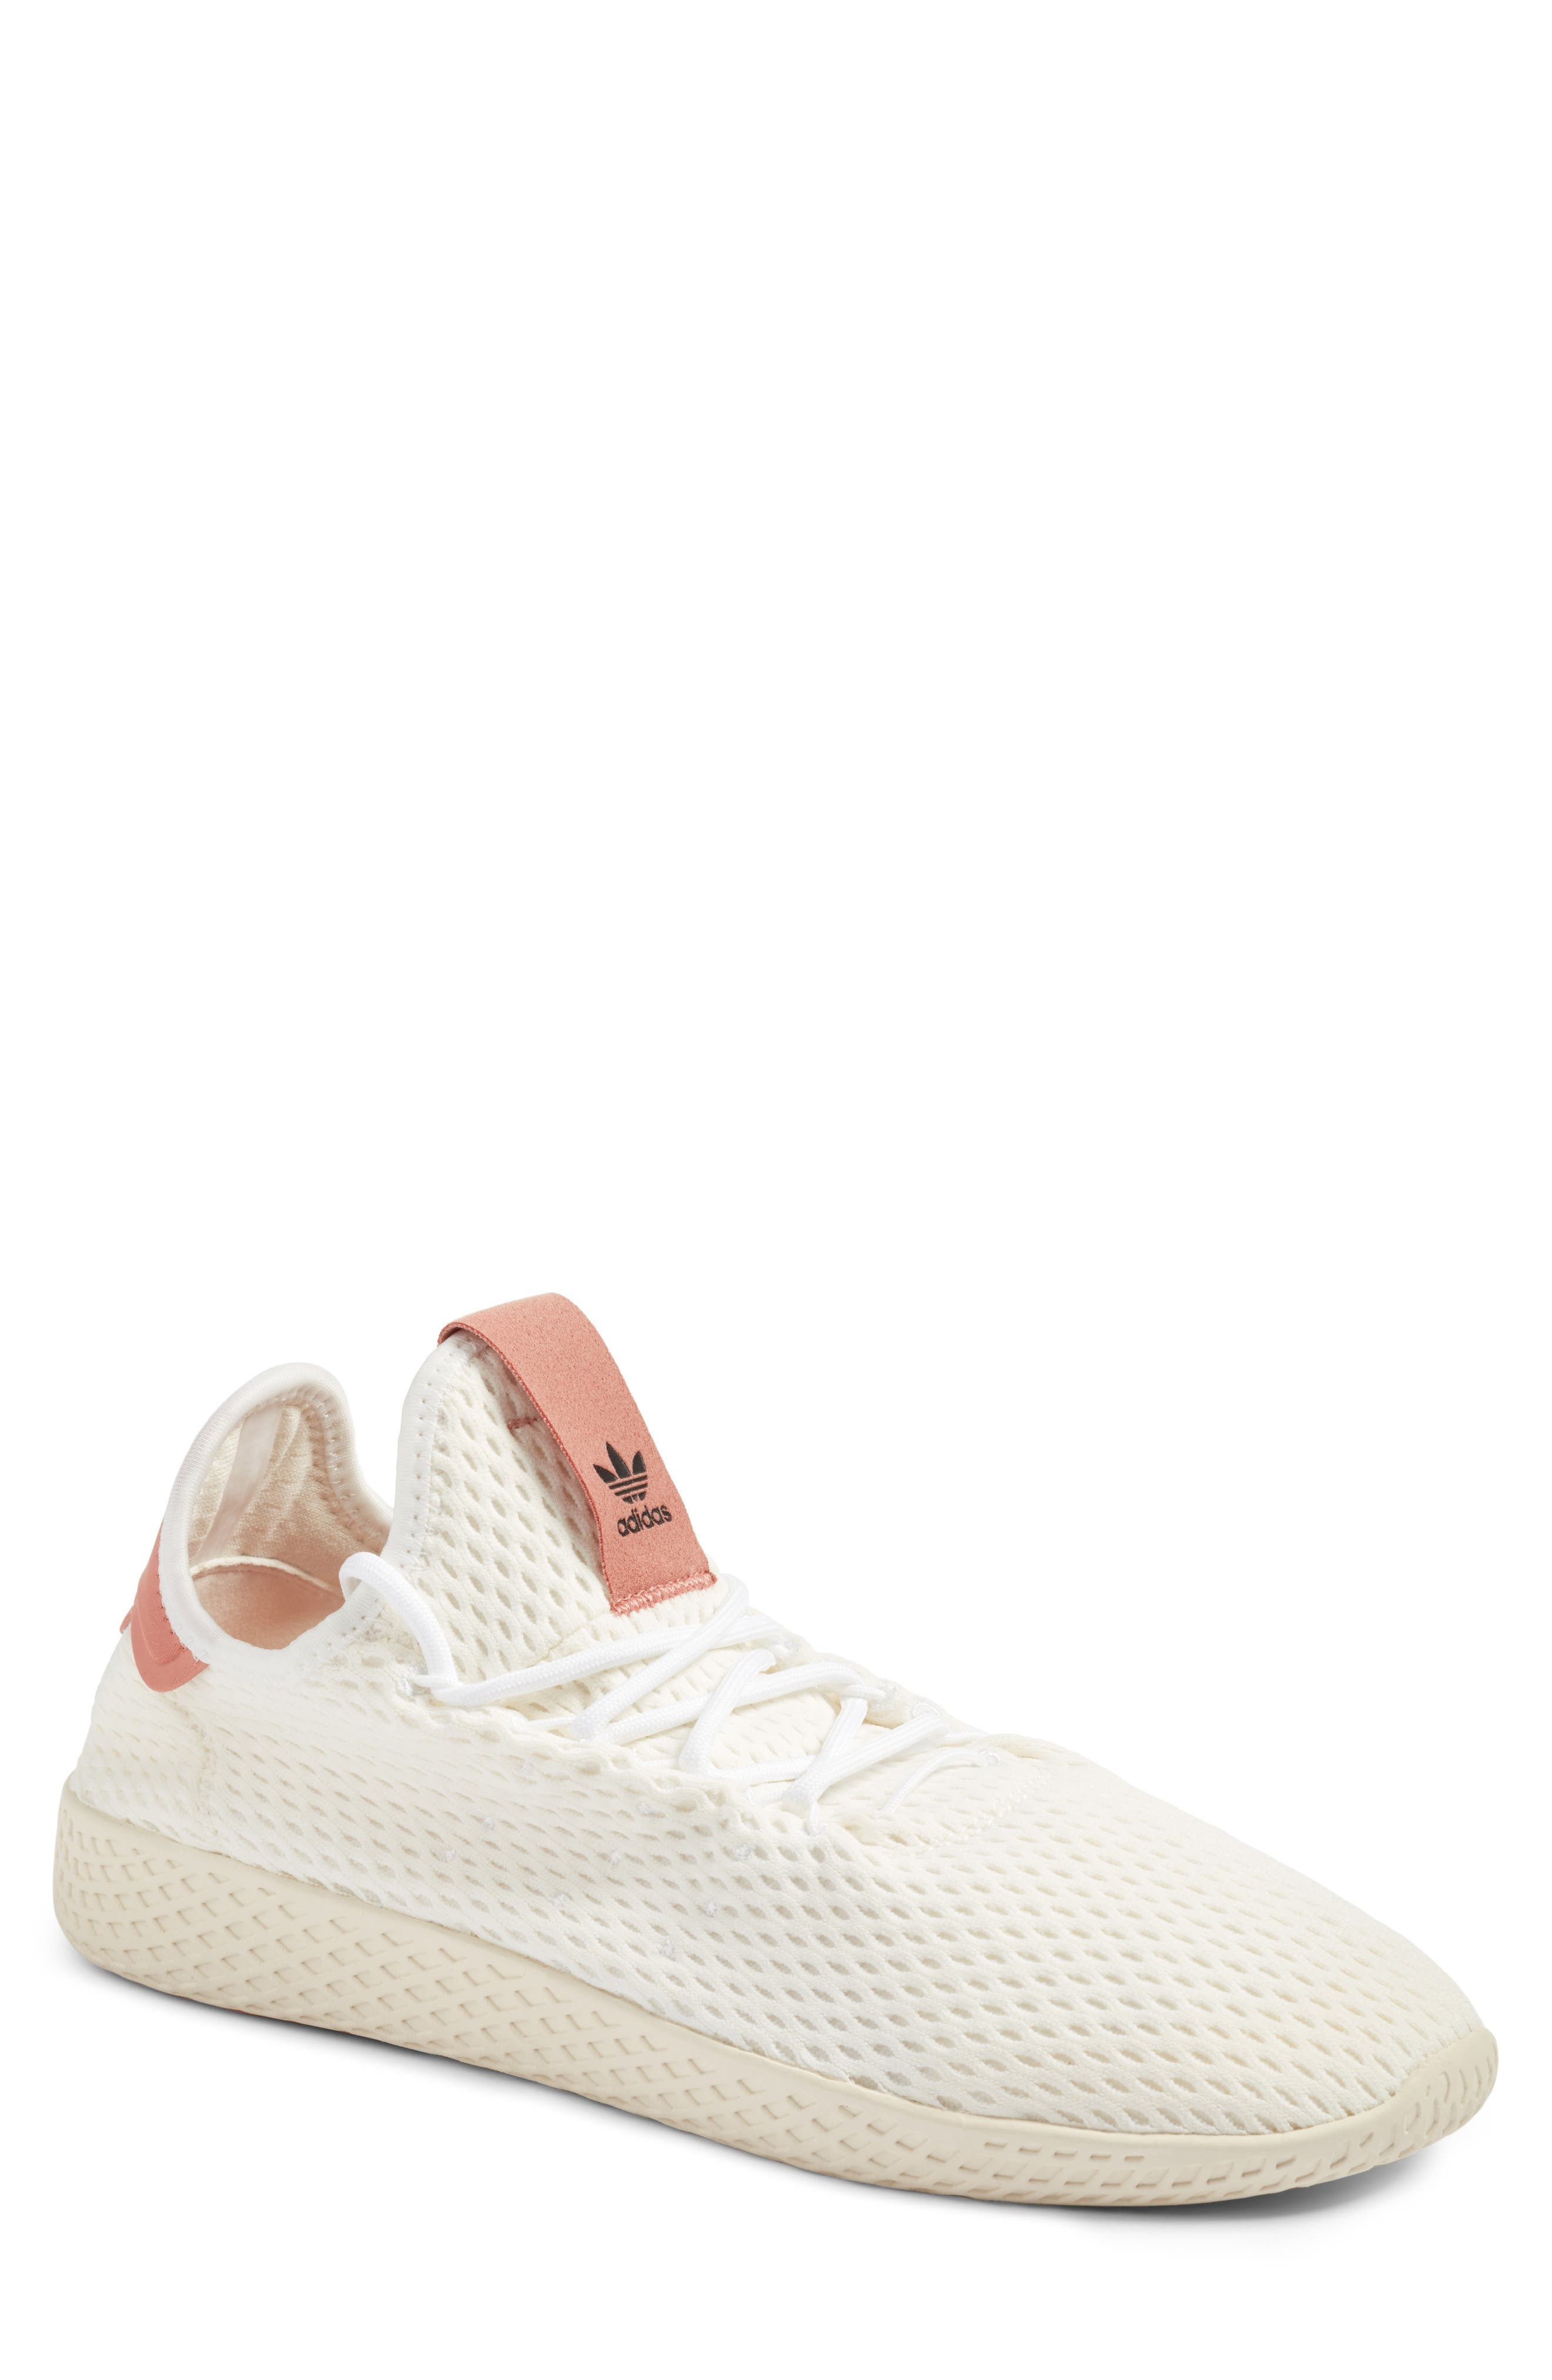 nordstrom adidas shoes women 630942